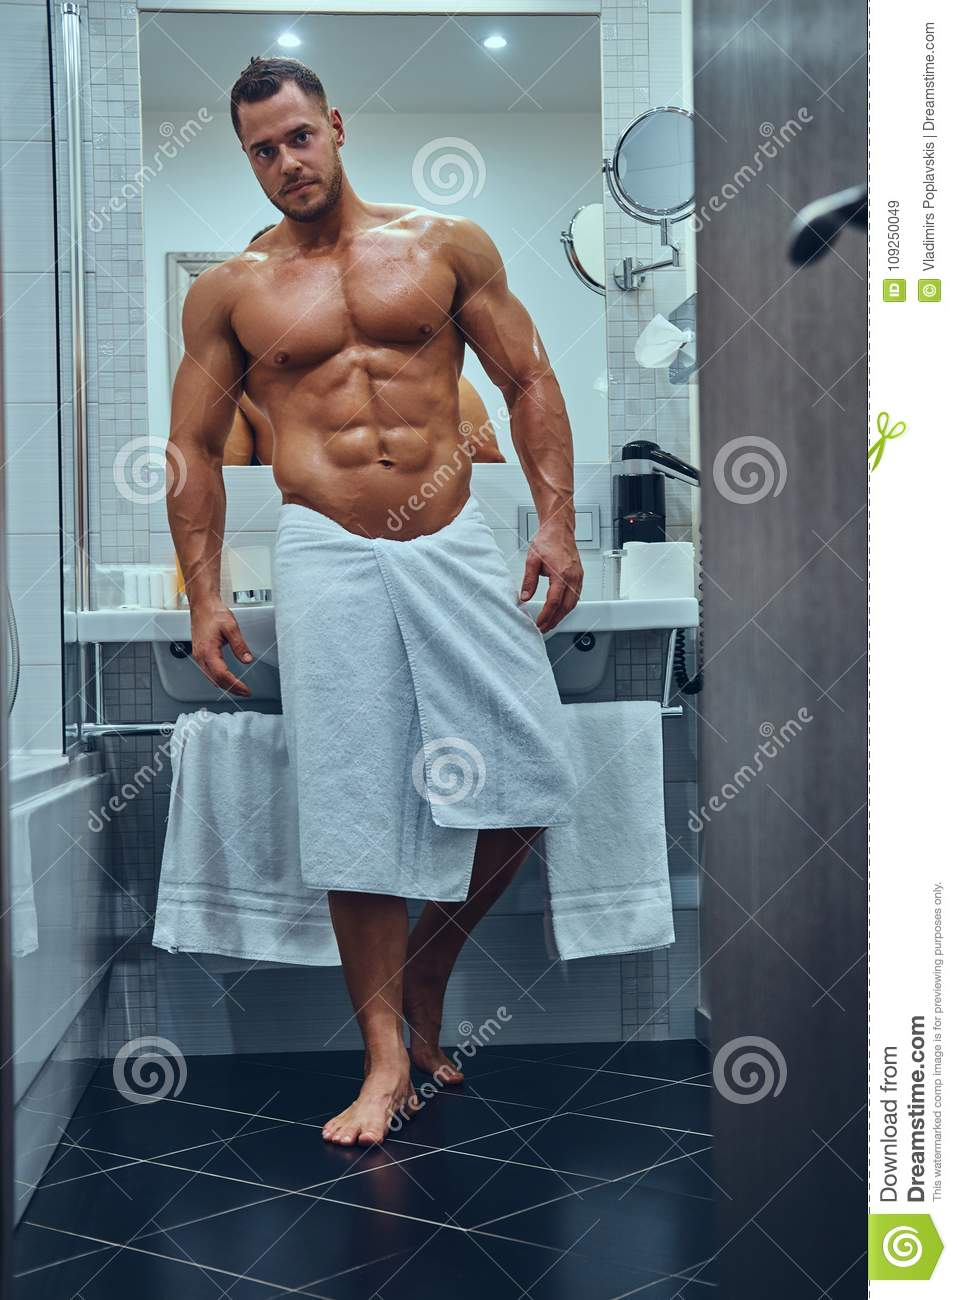 A Handsome Muscular Male In Stylish Twin Bathroom. Stock Image ... 319c5f957